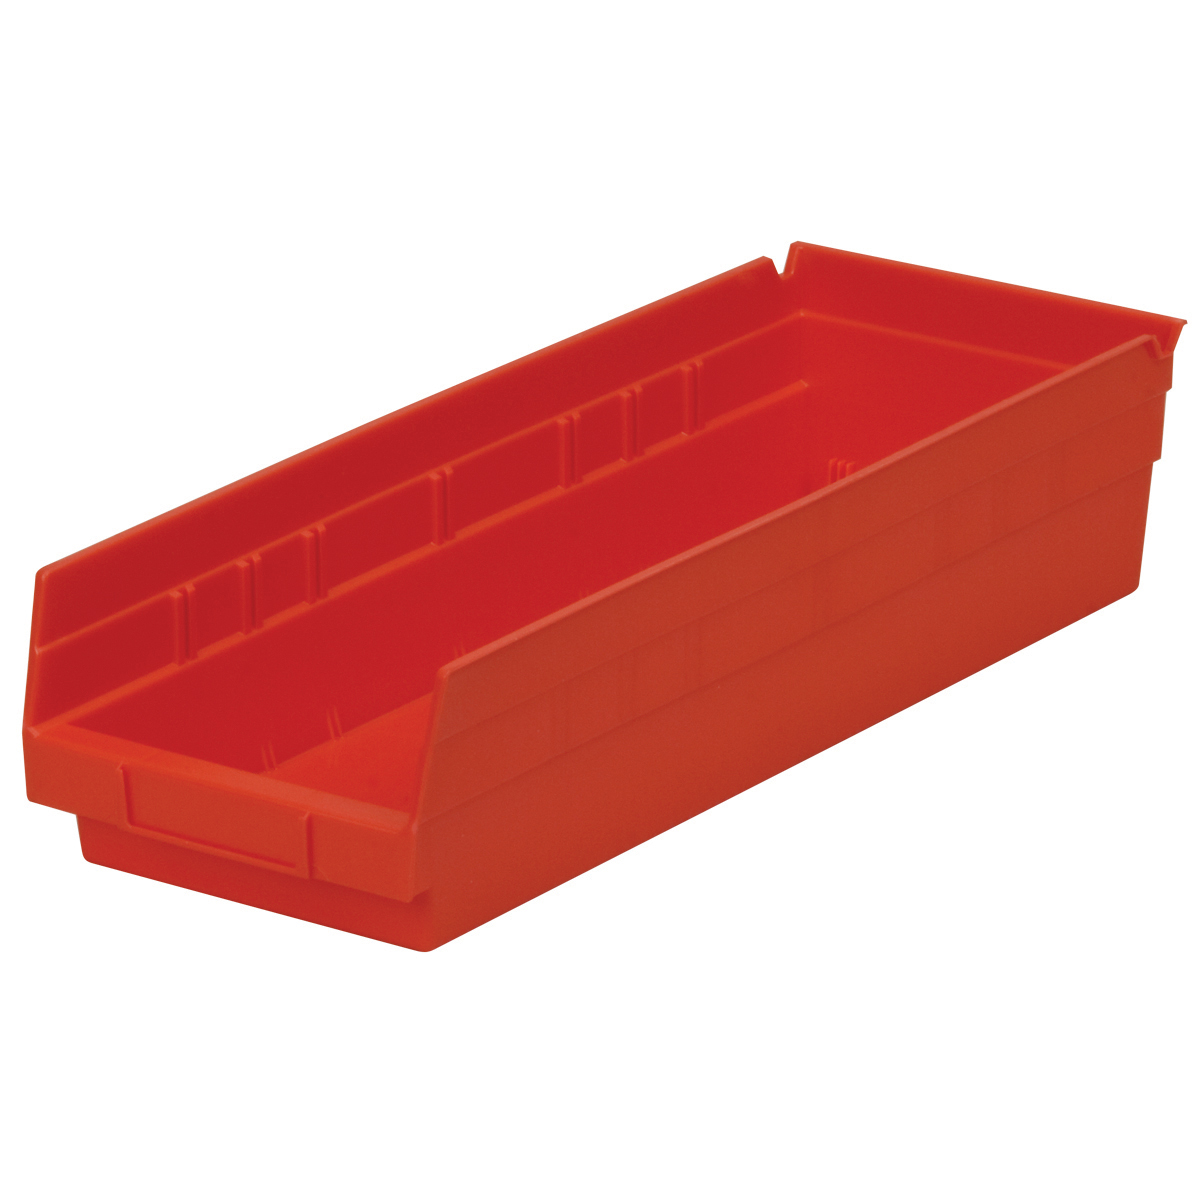 Shelf Bin 17-7/8 x 6-5/8 x 4, Red (30138RED).  This item sold in carton quantities of 12.